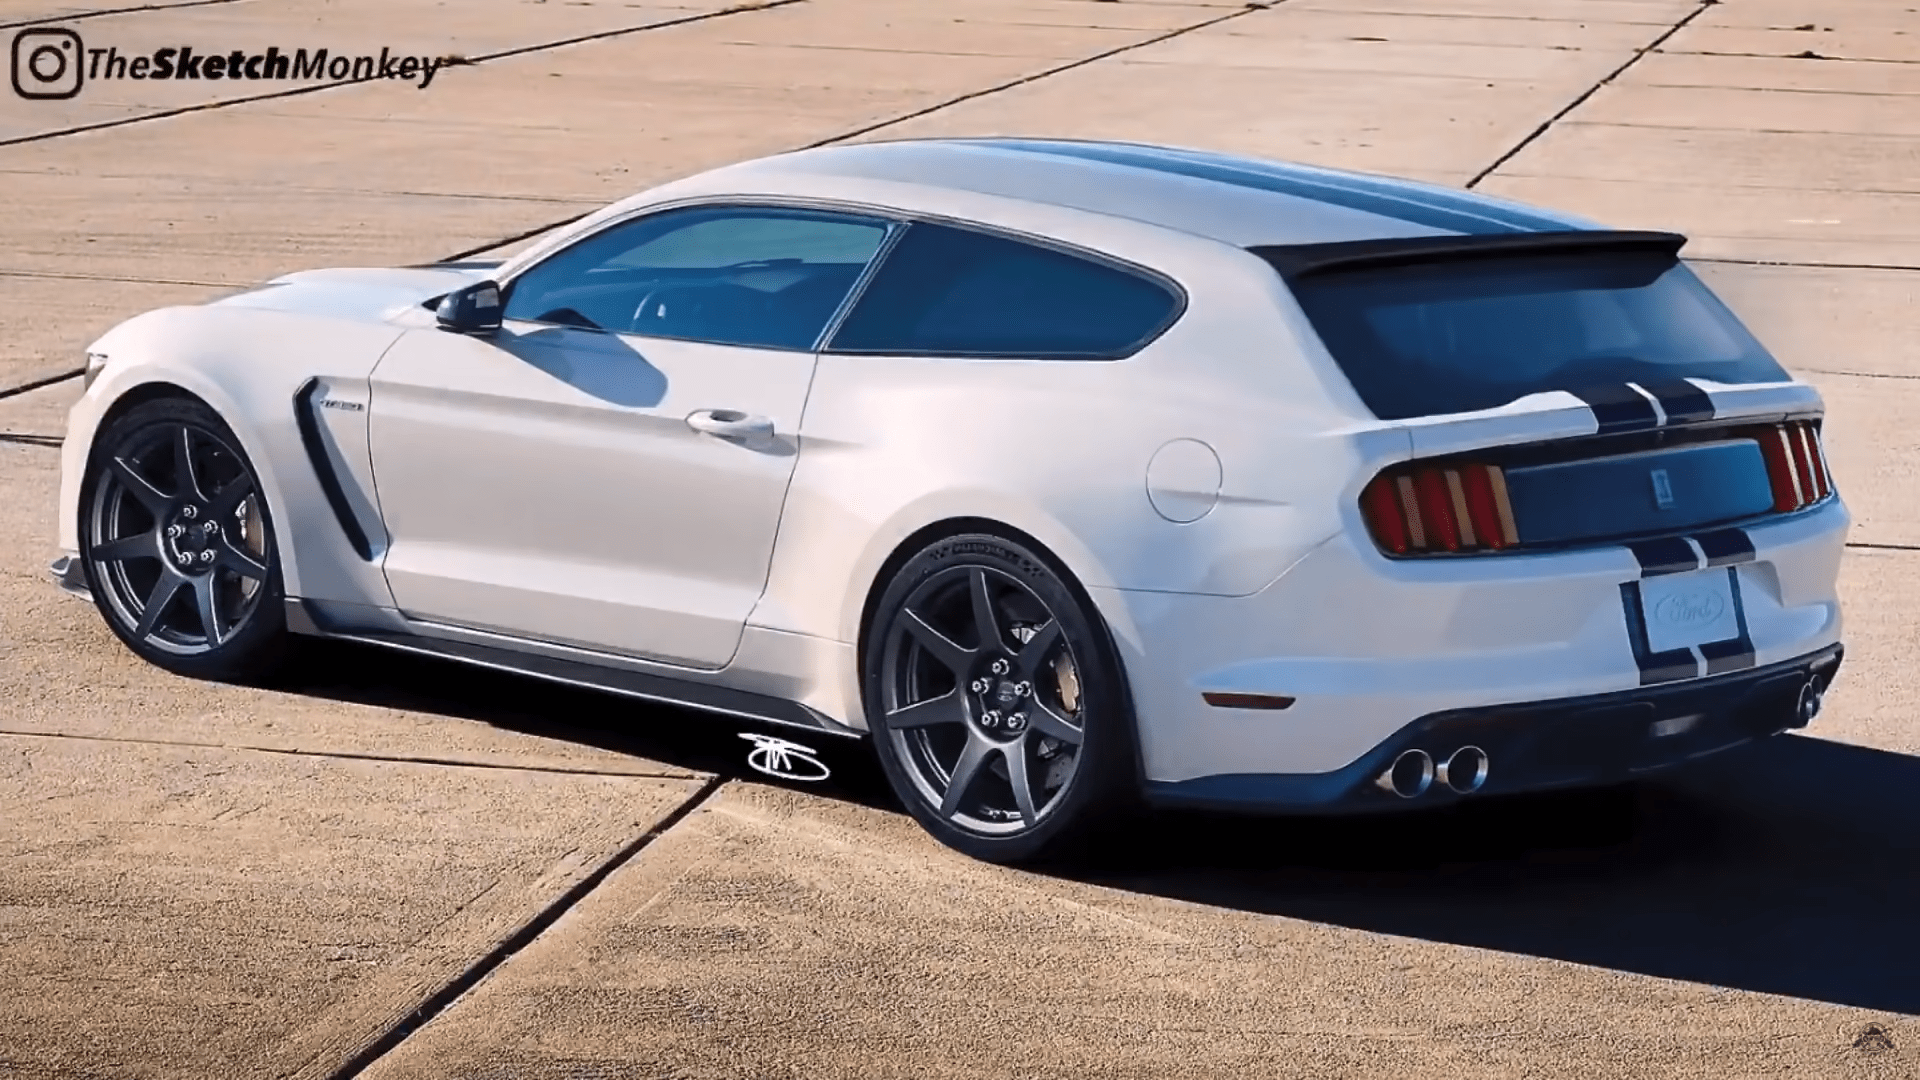 Ford Mustang Shelby GT350 Shooting Brake